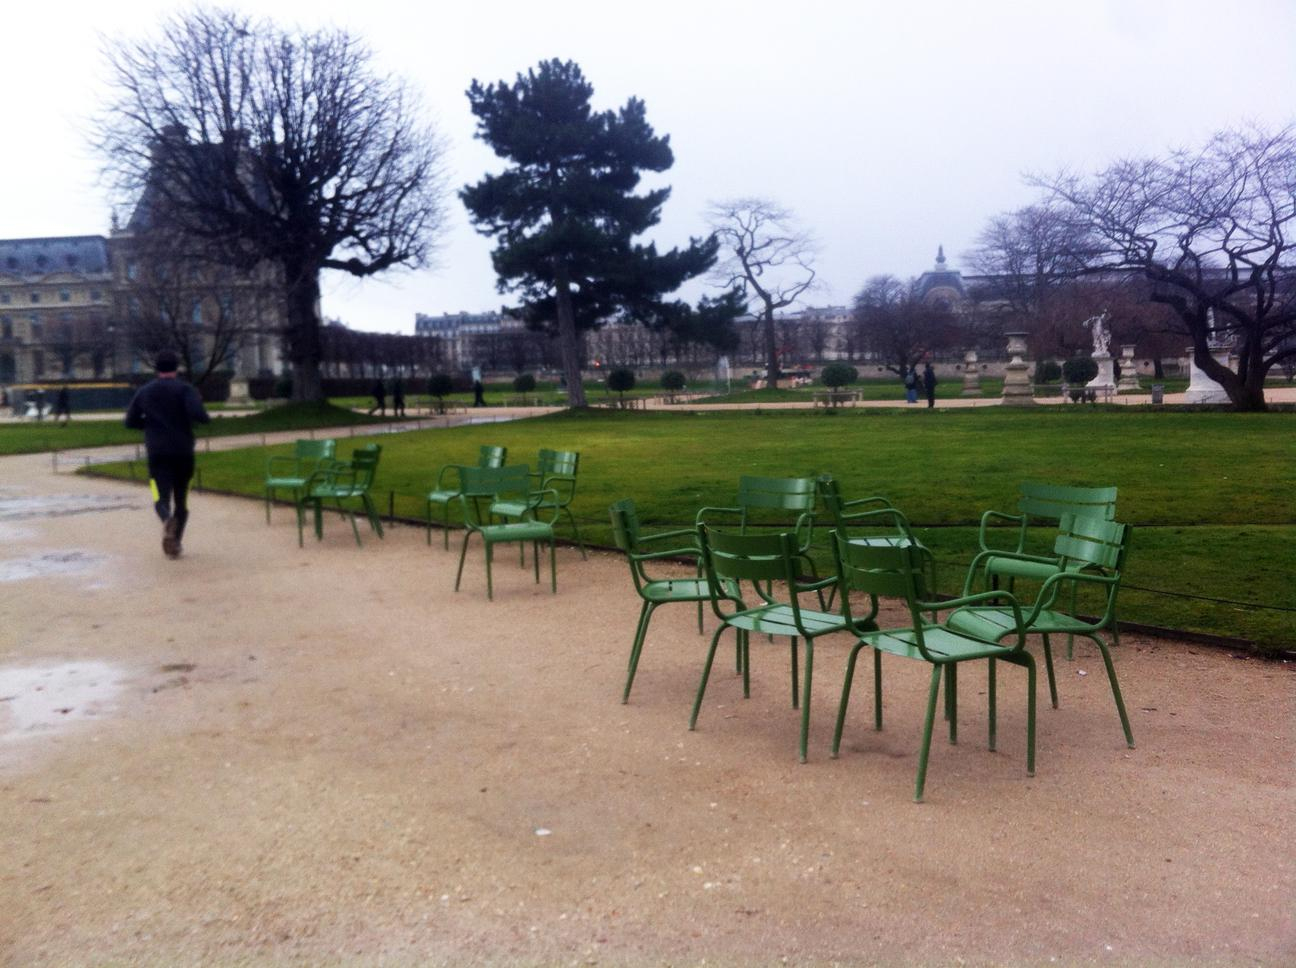 Fermob Luxembourg Chair In Jardin Des Tuileries In Paris ... destiné Fermob Jardin Du Luxembourg